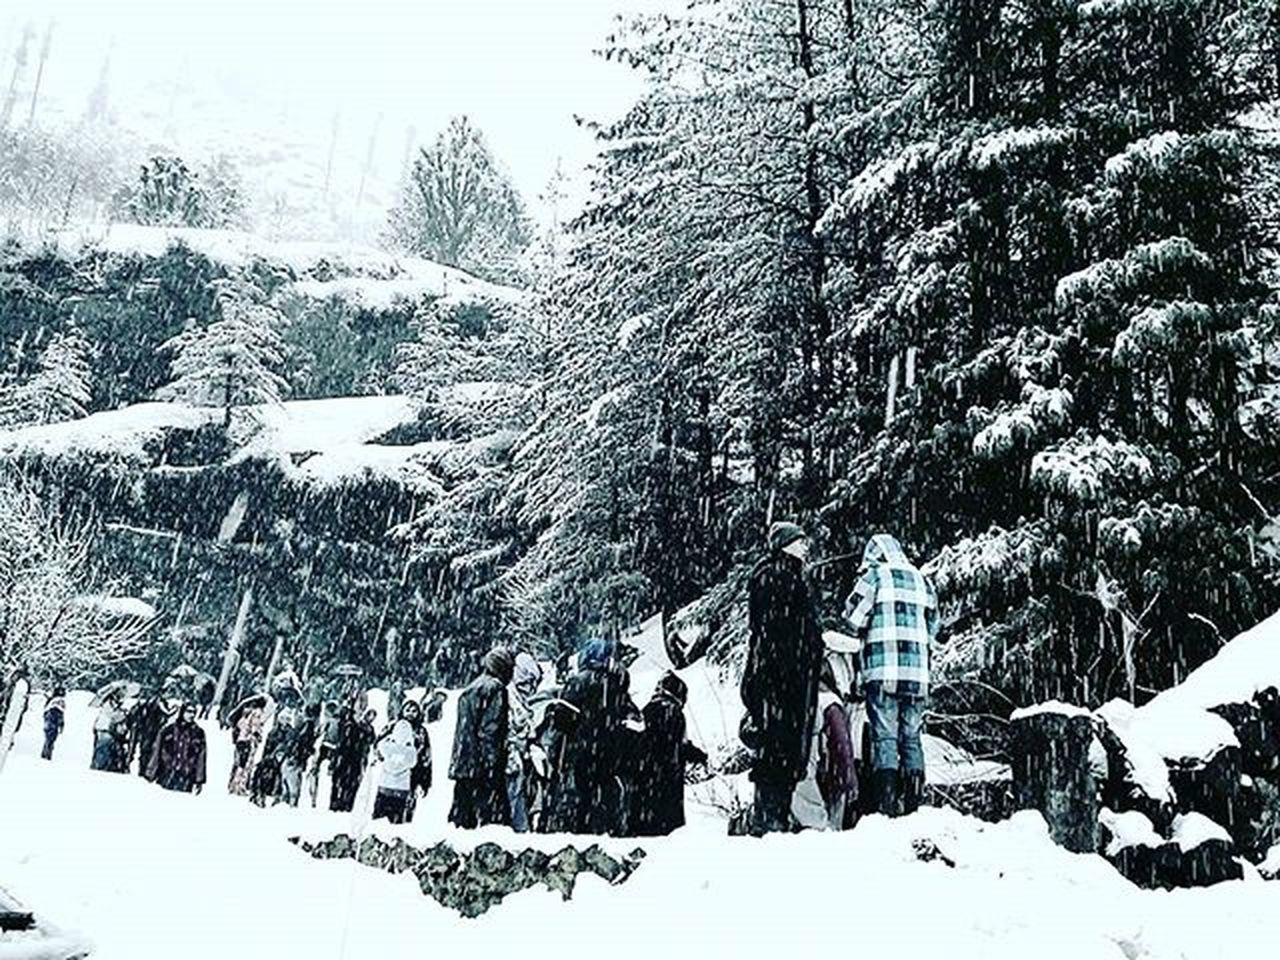 Traveler's love... TBT  L4l Instagramers Instafollow Manali Memories Snow Winter Nature Beautiful Photography Throwbackthursday  Photographylovers Yjhd Wanderlust White Travellove Travel Traveldiary Traveldiarykr7 Incredibleindia India Awesomeearth Theworldguru